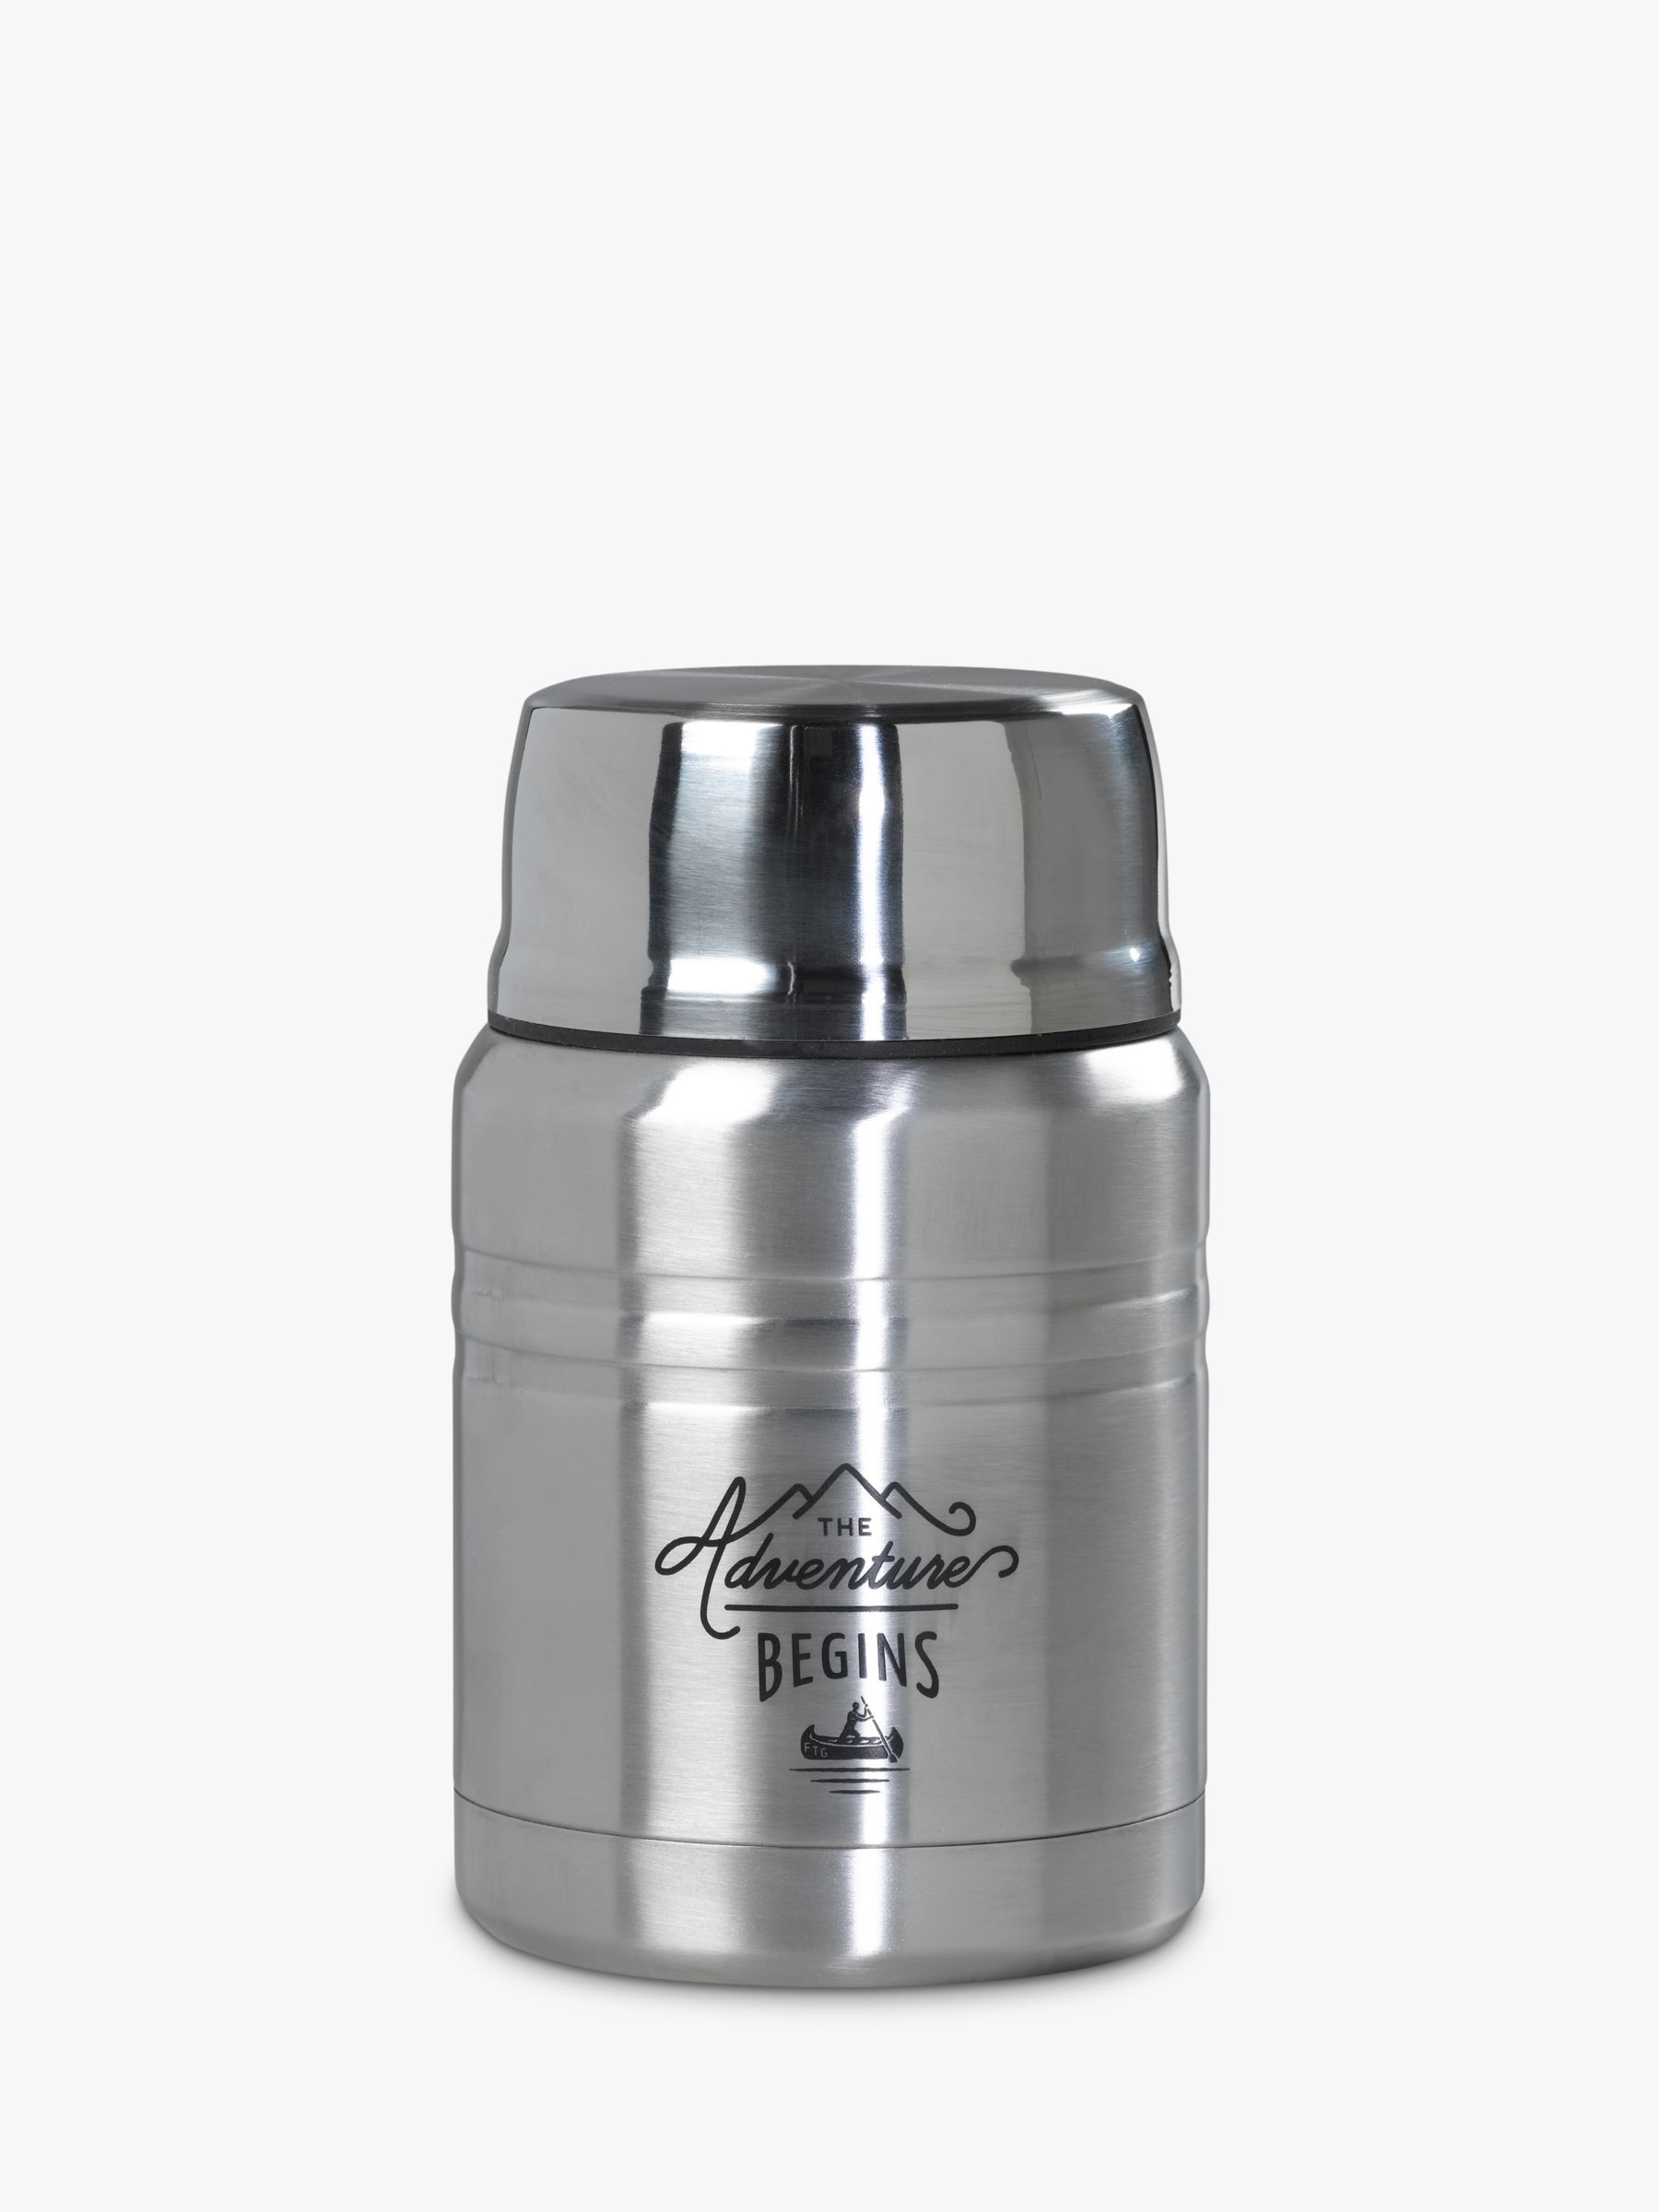 Gentlemen's Hardware Gentlemen's Hardware Stainless Steel Food Flask with Spoon